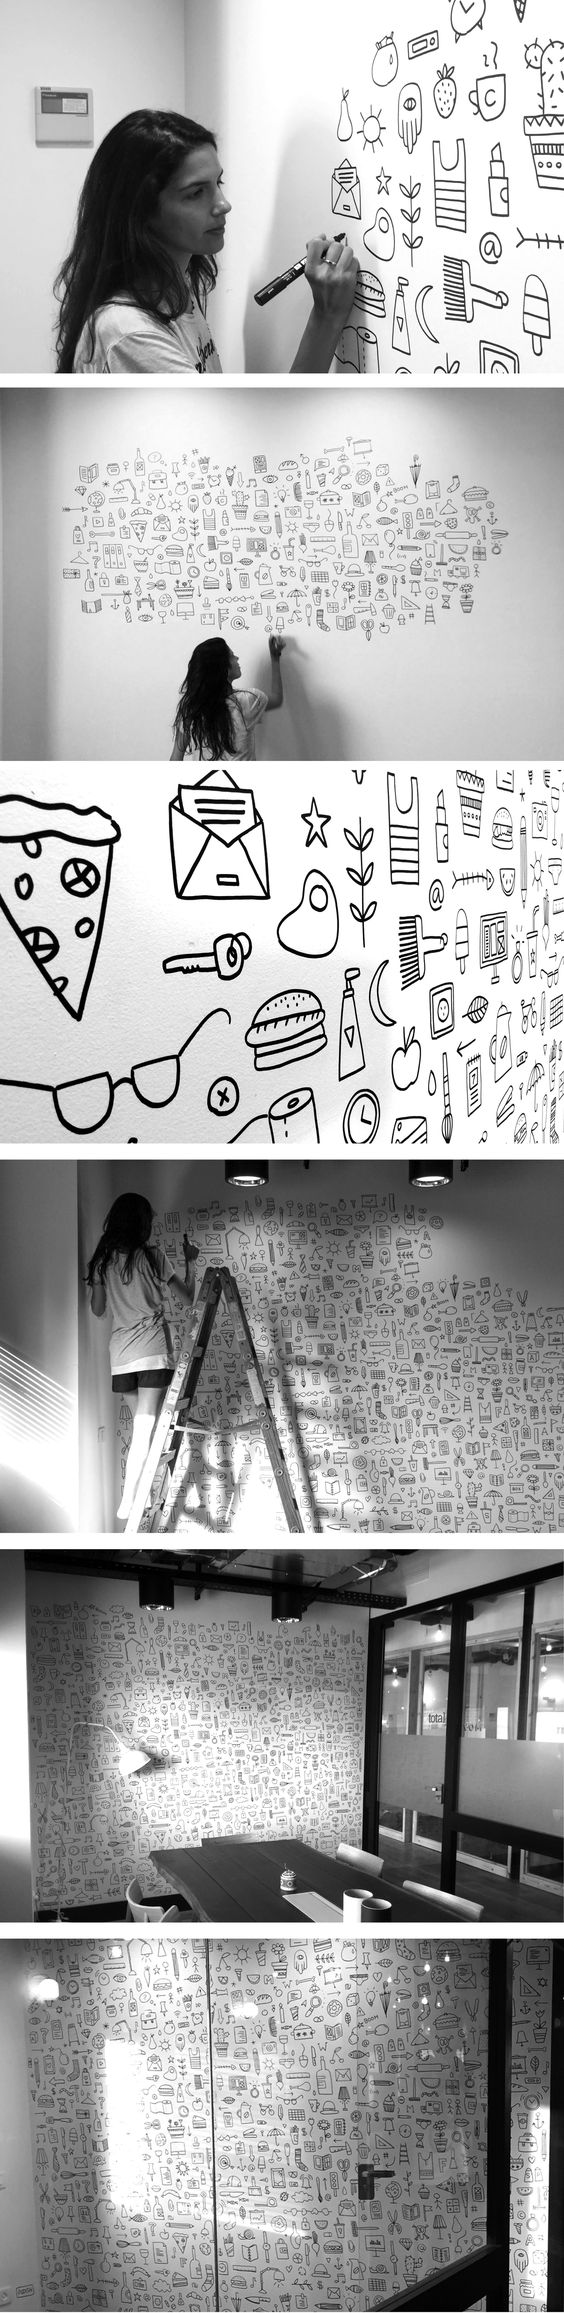 Doodle wall art | hand drawn illustration by PUDISH